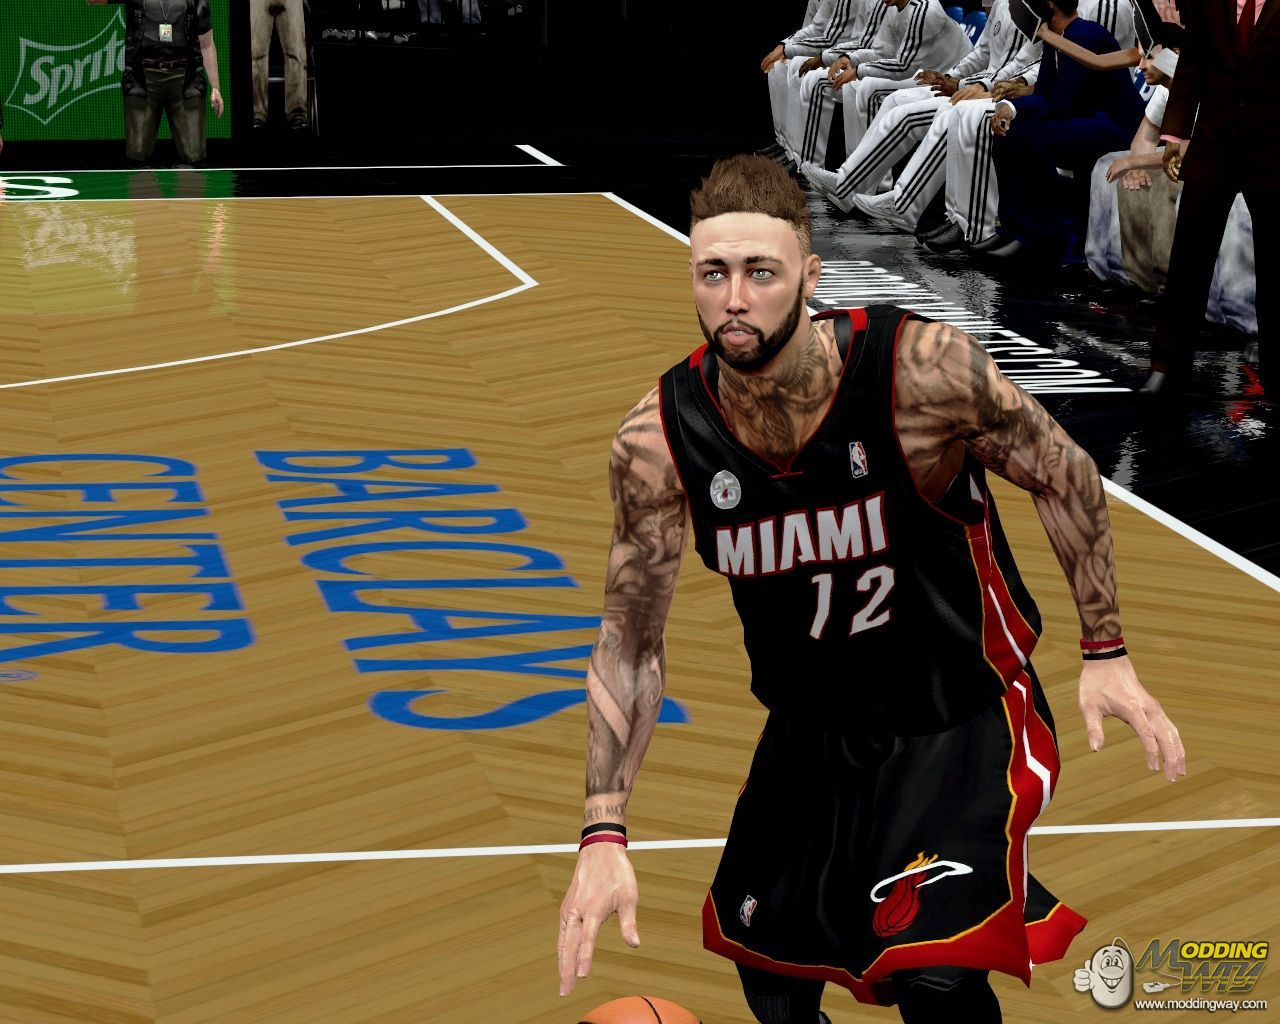 My Player Tattoos New Generation Preview Nba 2k13 At Moddingway